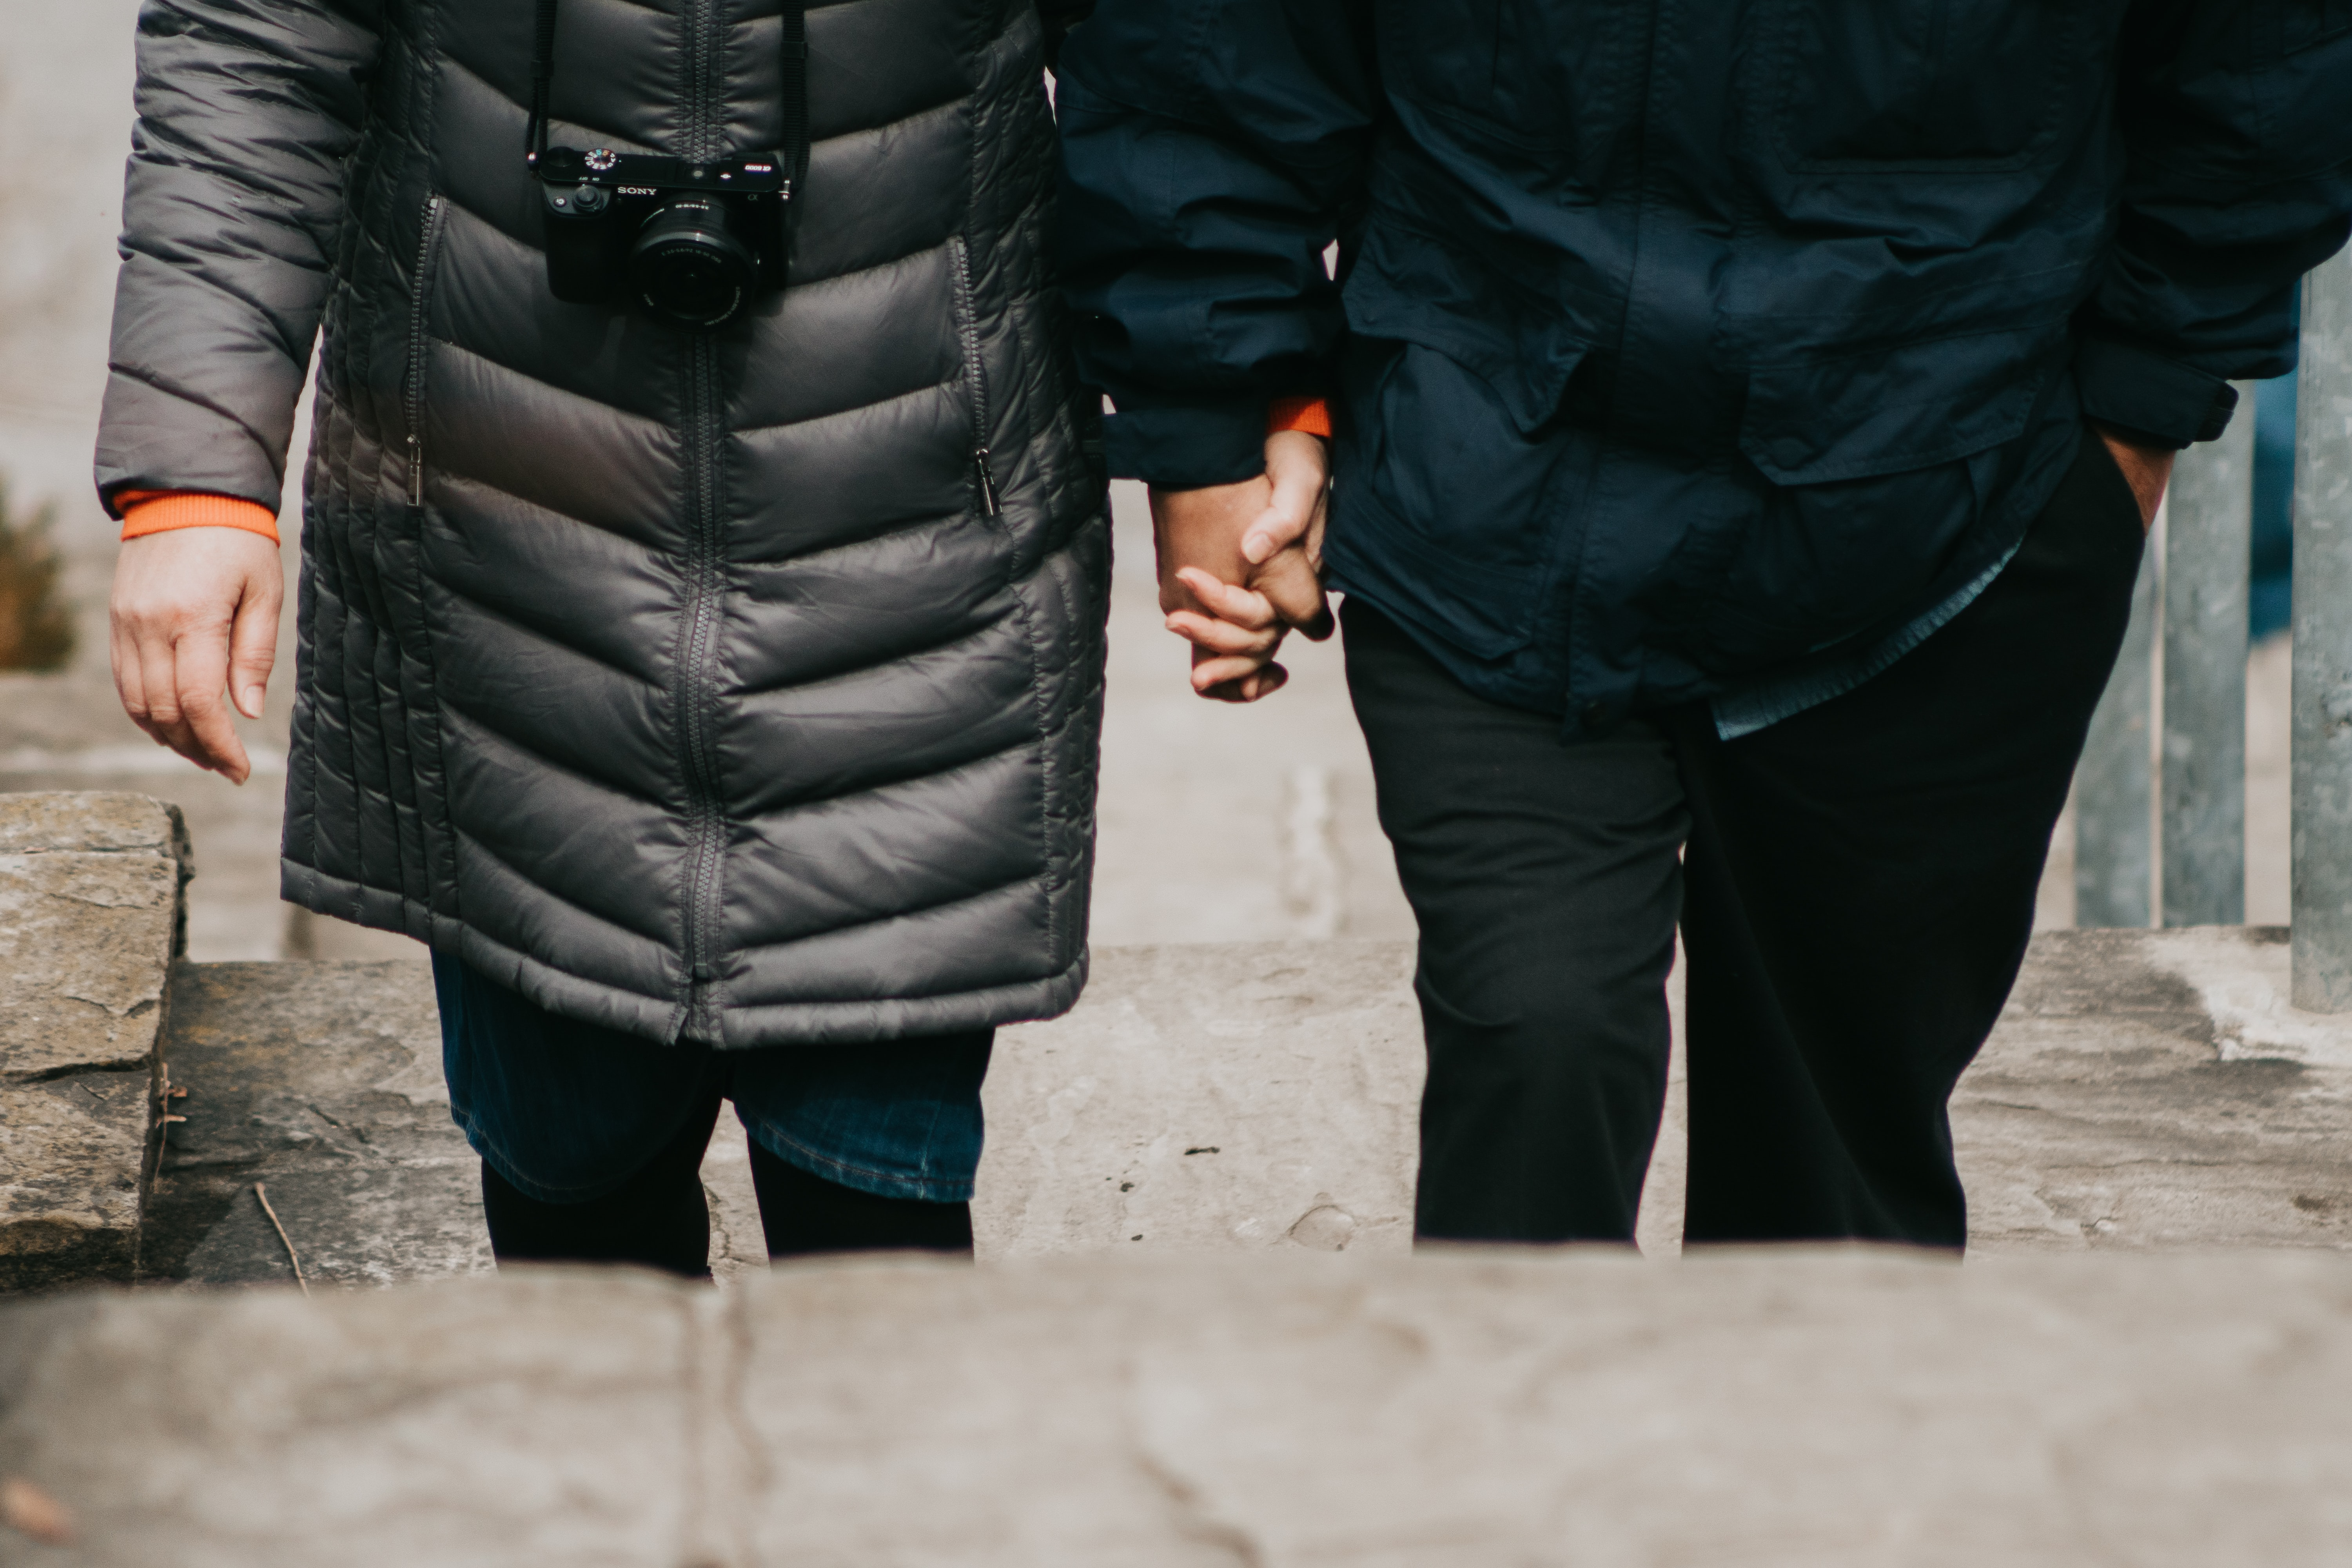 man and woman holding hands walking on stairs